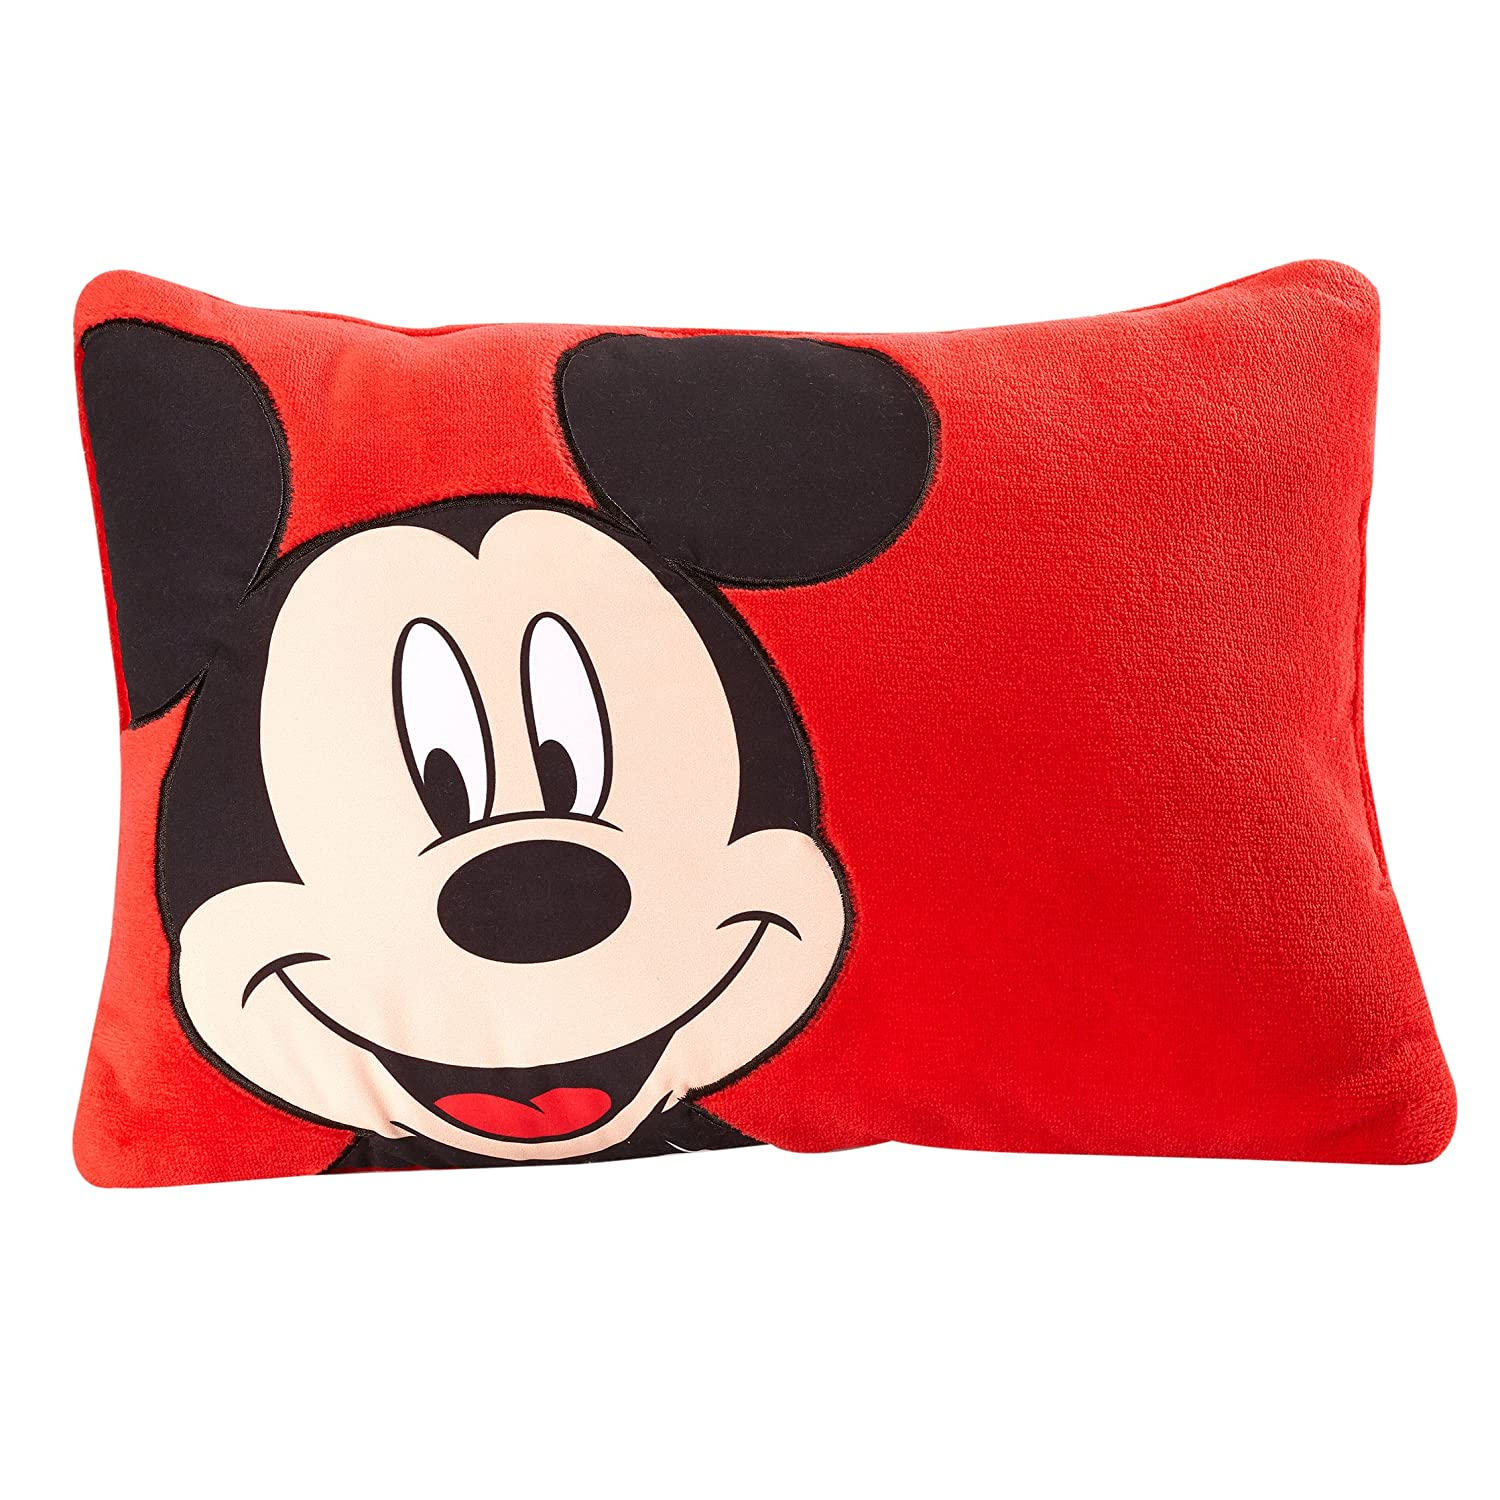 Disney Mickey Decorative Pillow, Red